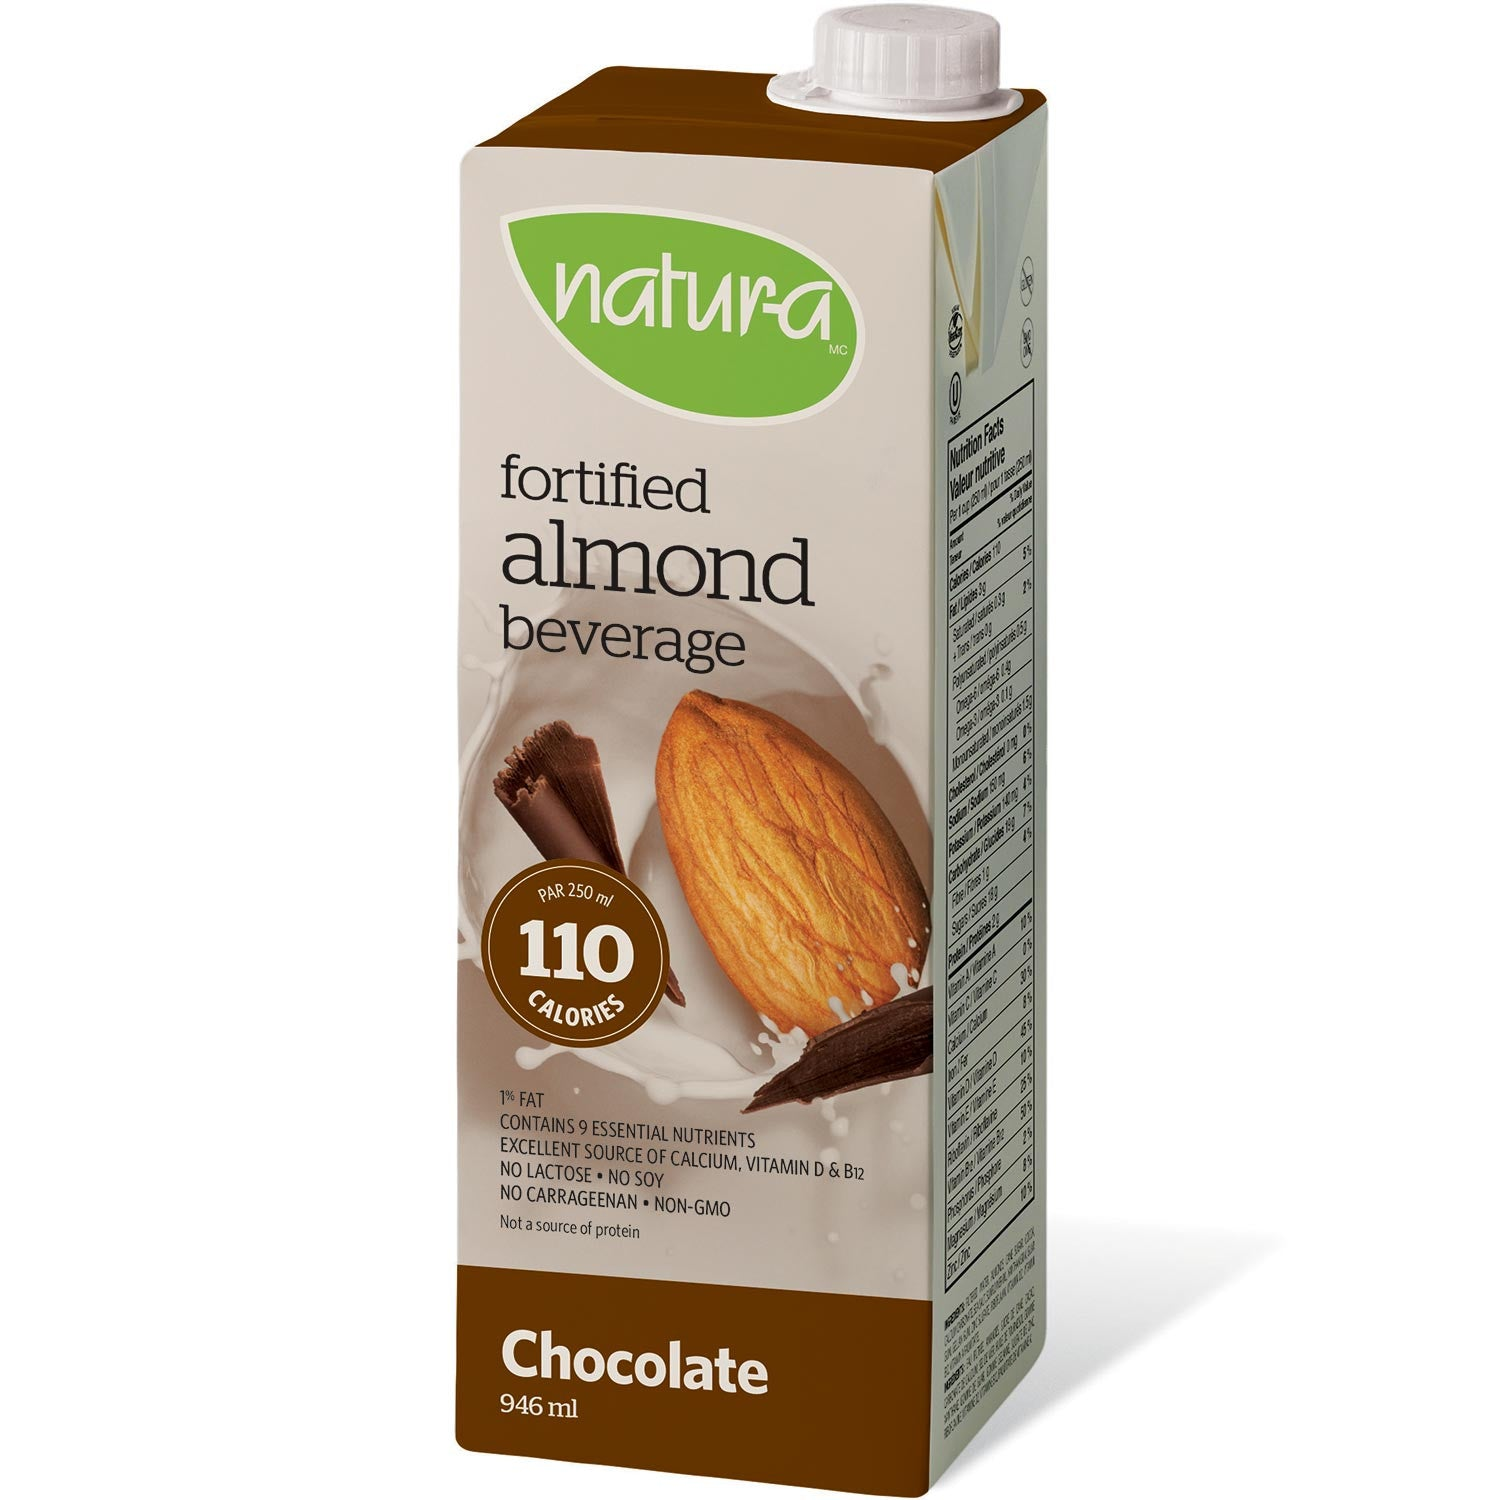 Natur-a Enriched Almond Beverage - Chocolate, 946 ml.-NaturesWisdom